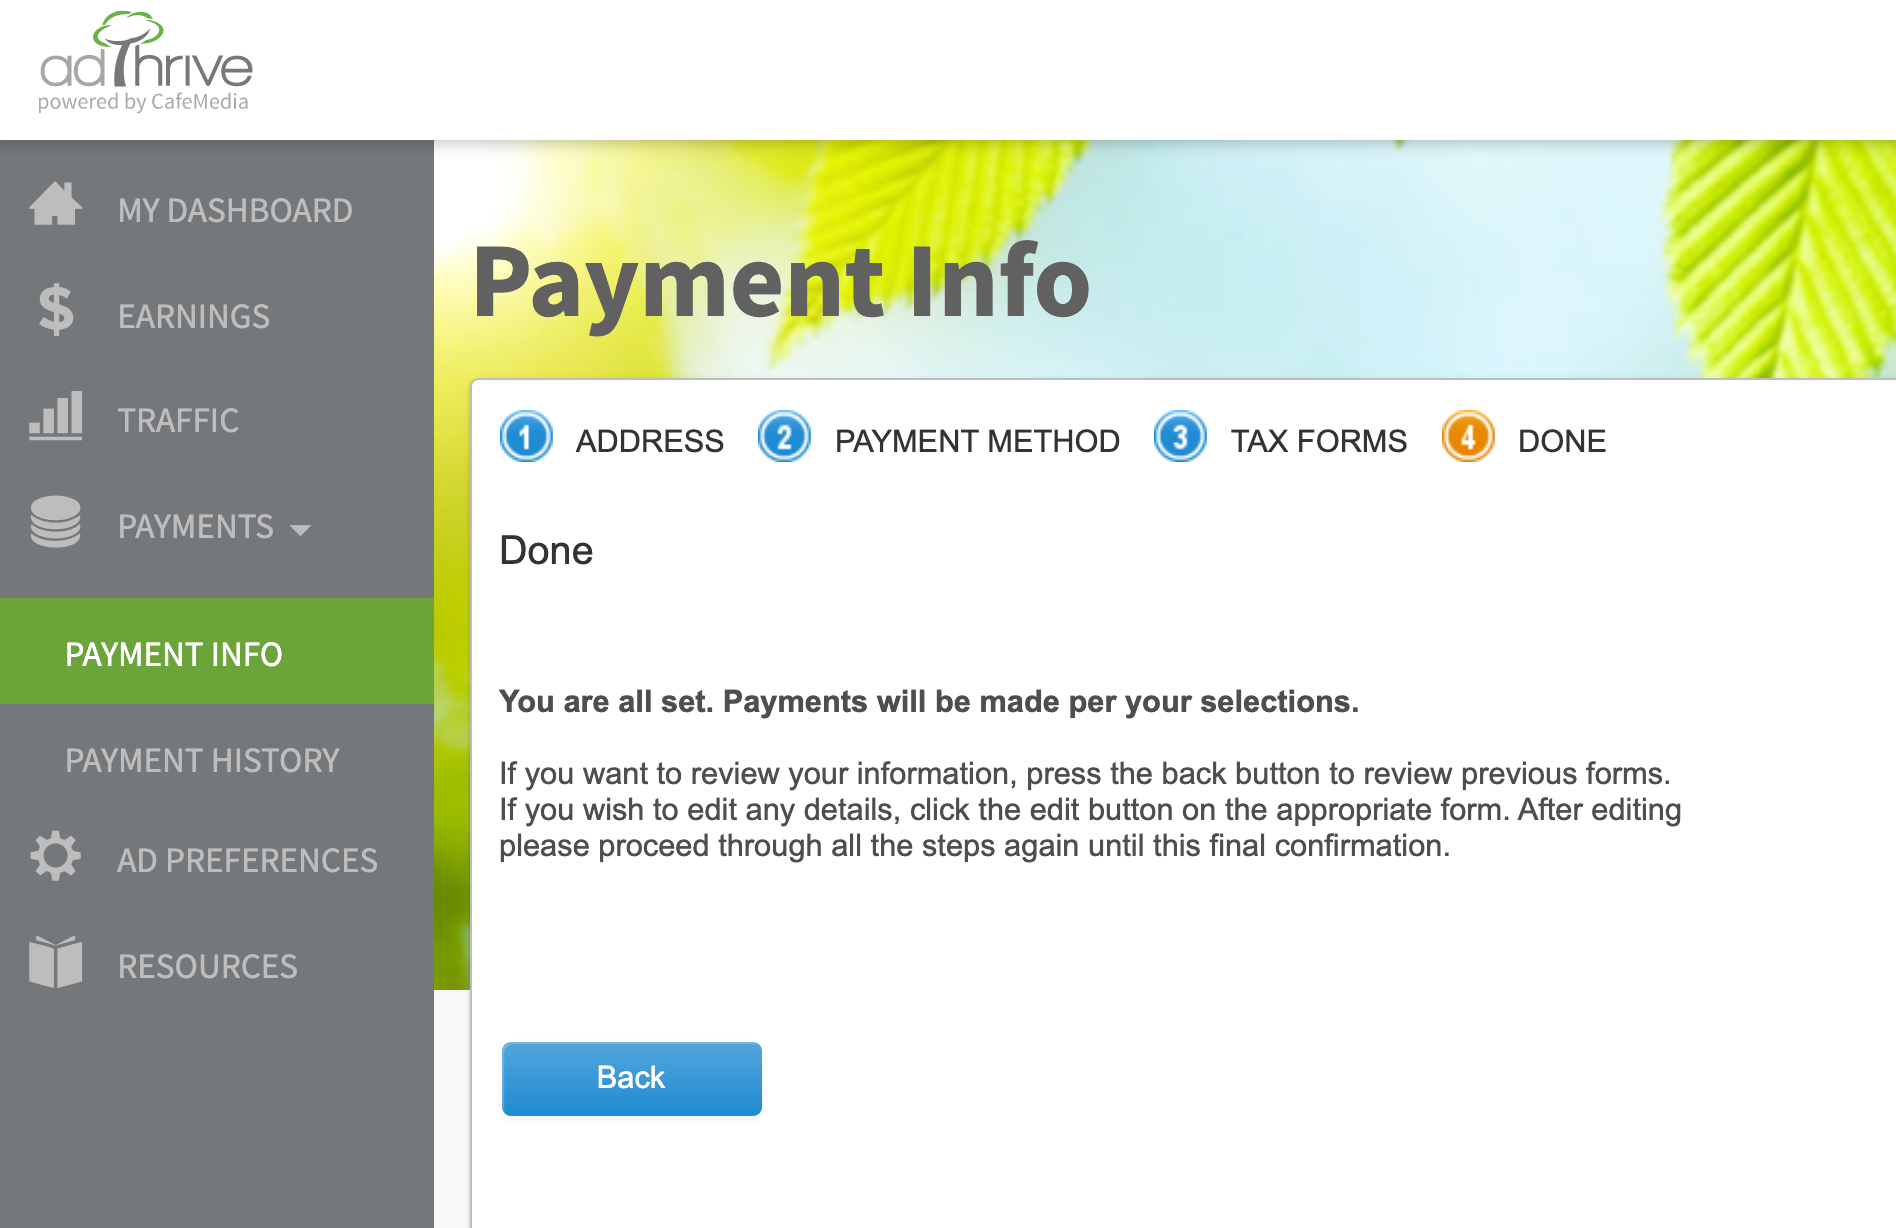 AdThrive_payment_info_complete.png